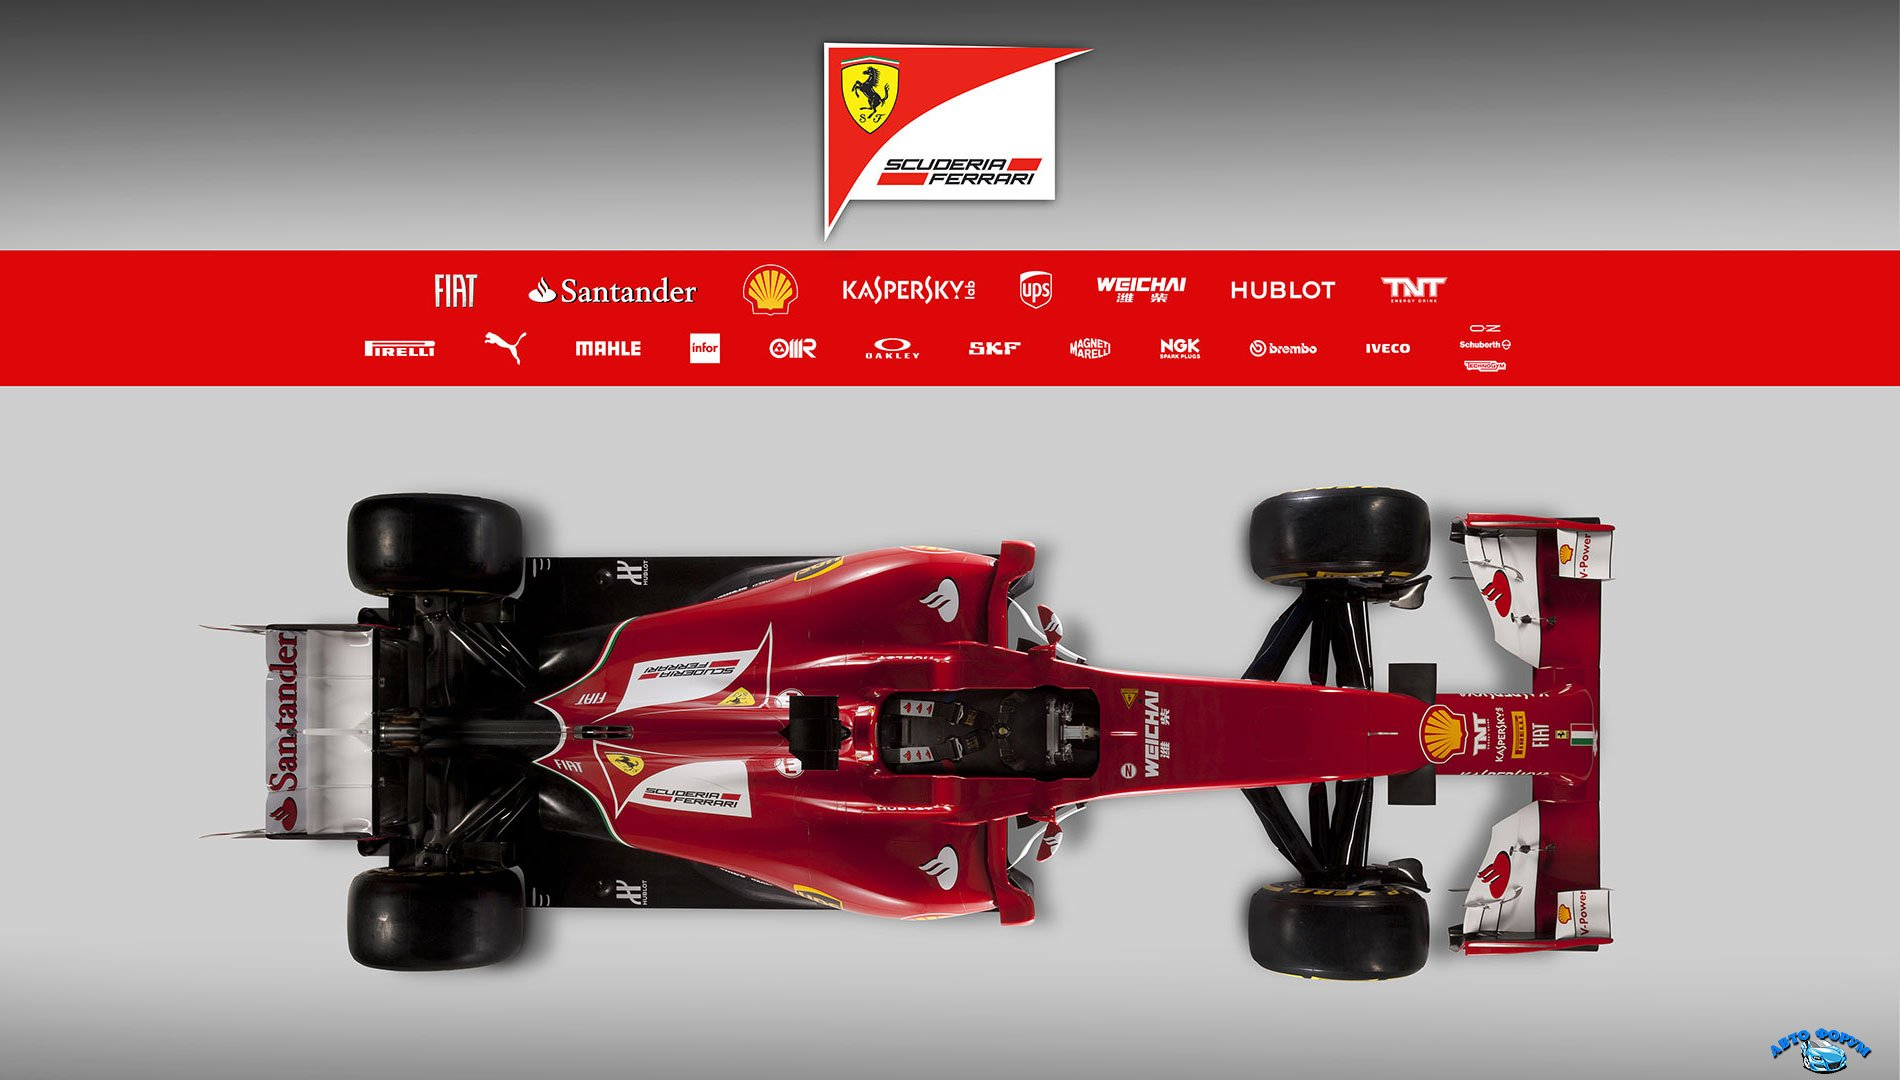 Ferrari-F14T-top-view-F1-Fansite.jpg